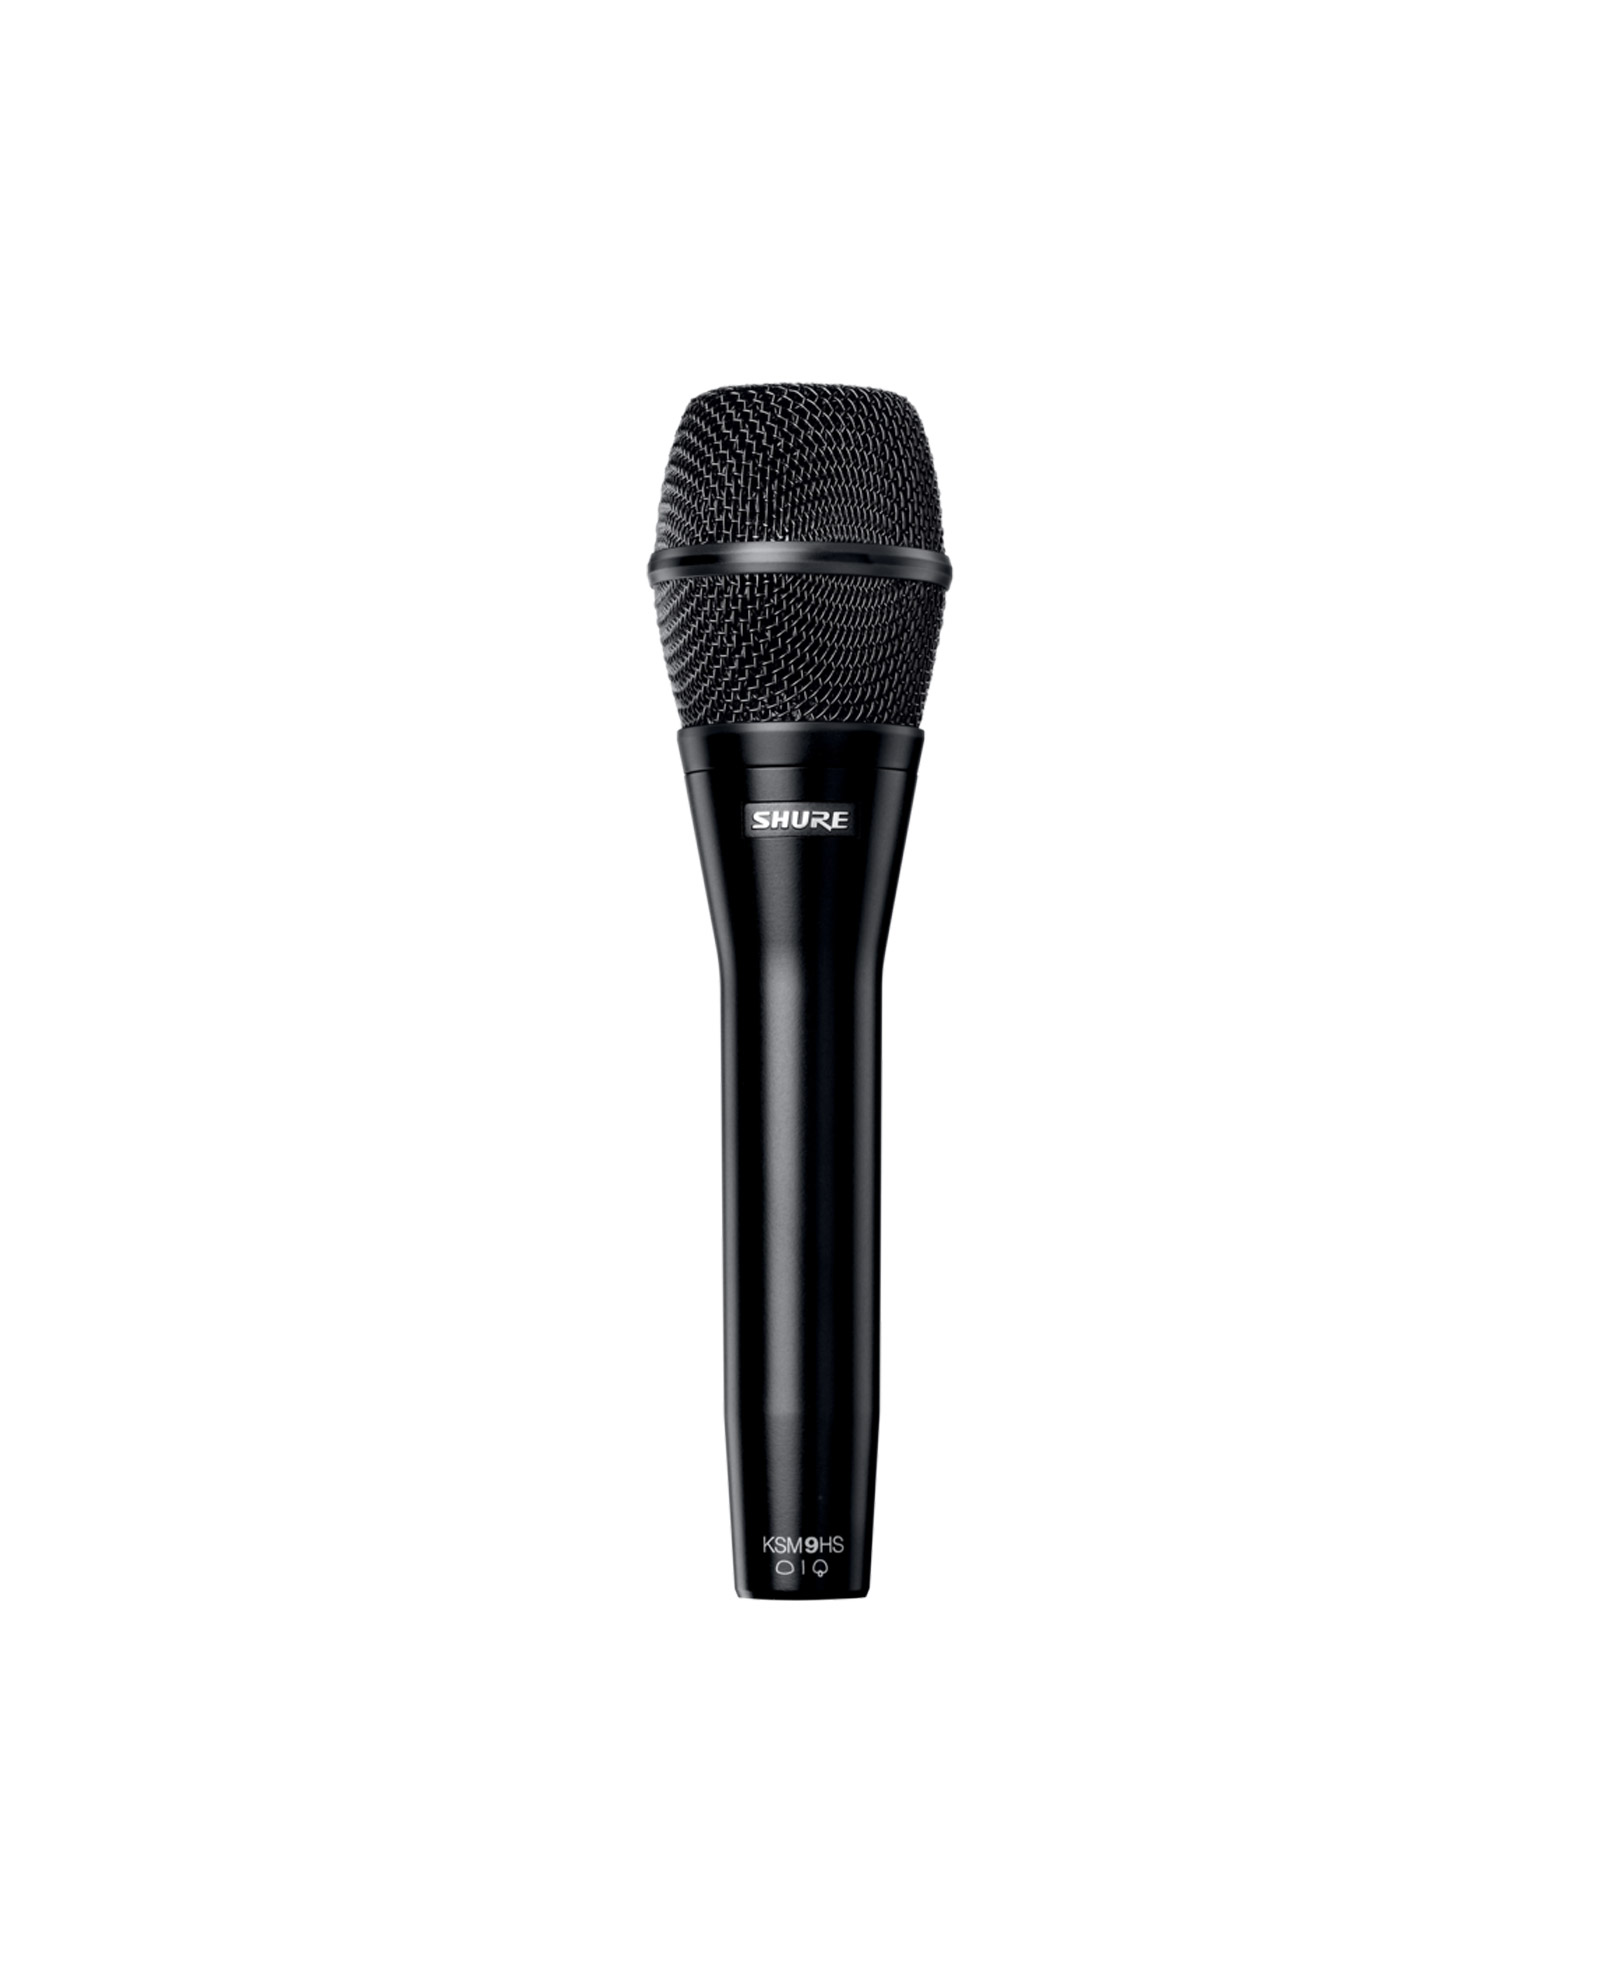 Shure Ksm9hs Condenser Microphone With Switchable Polar Pattern 1